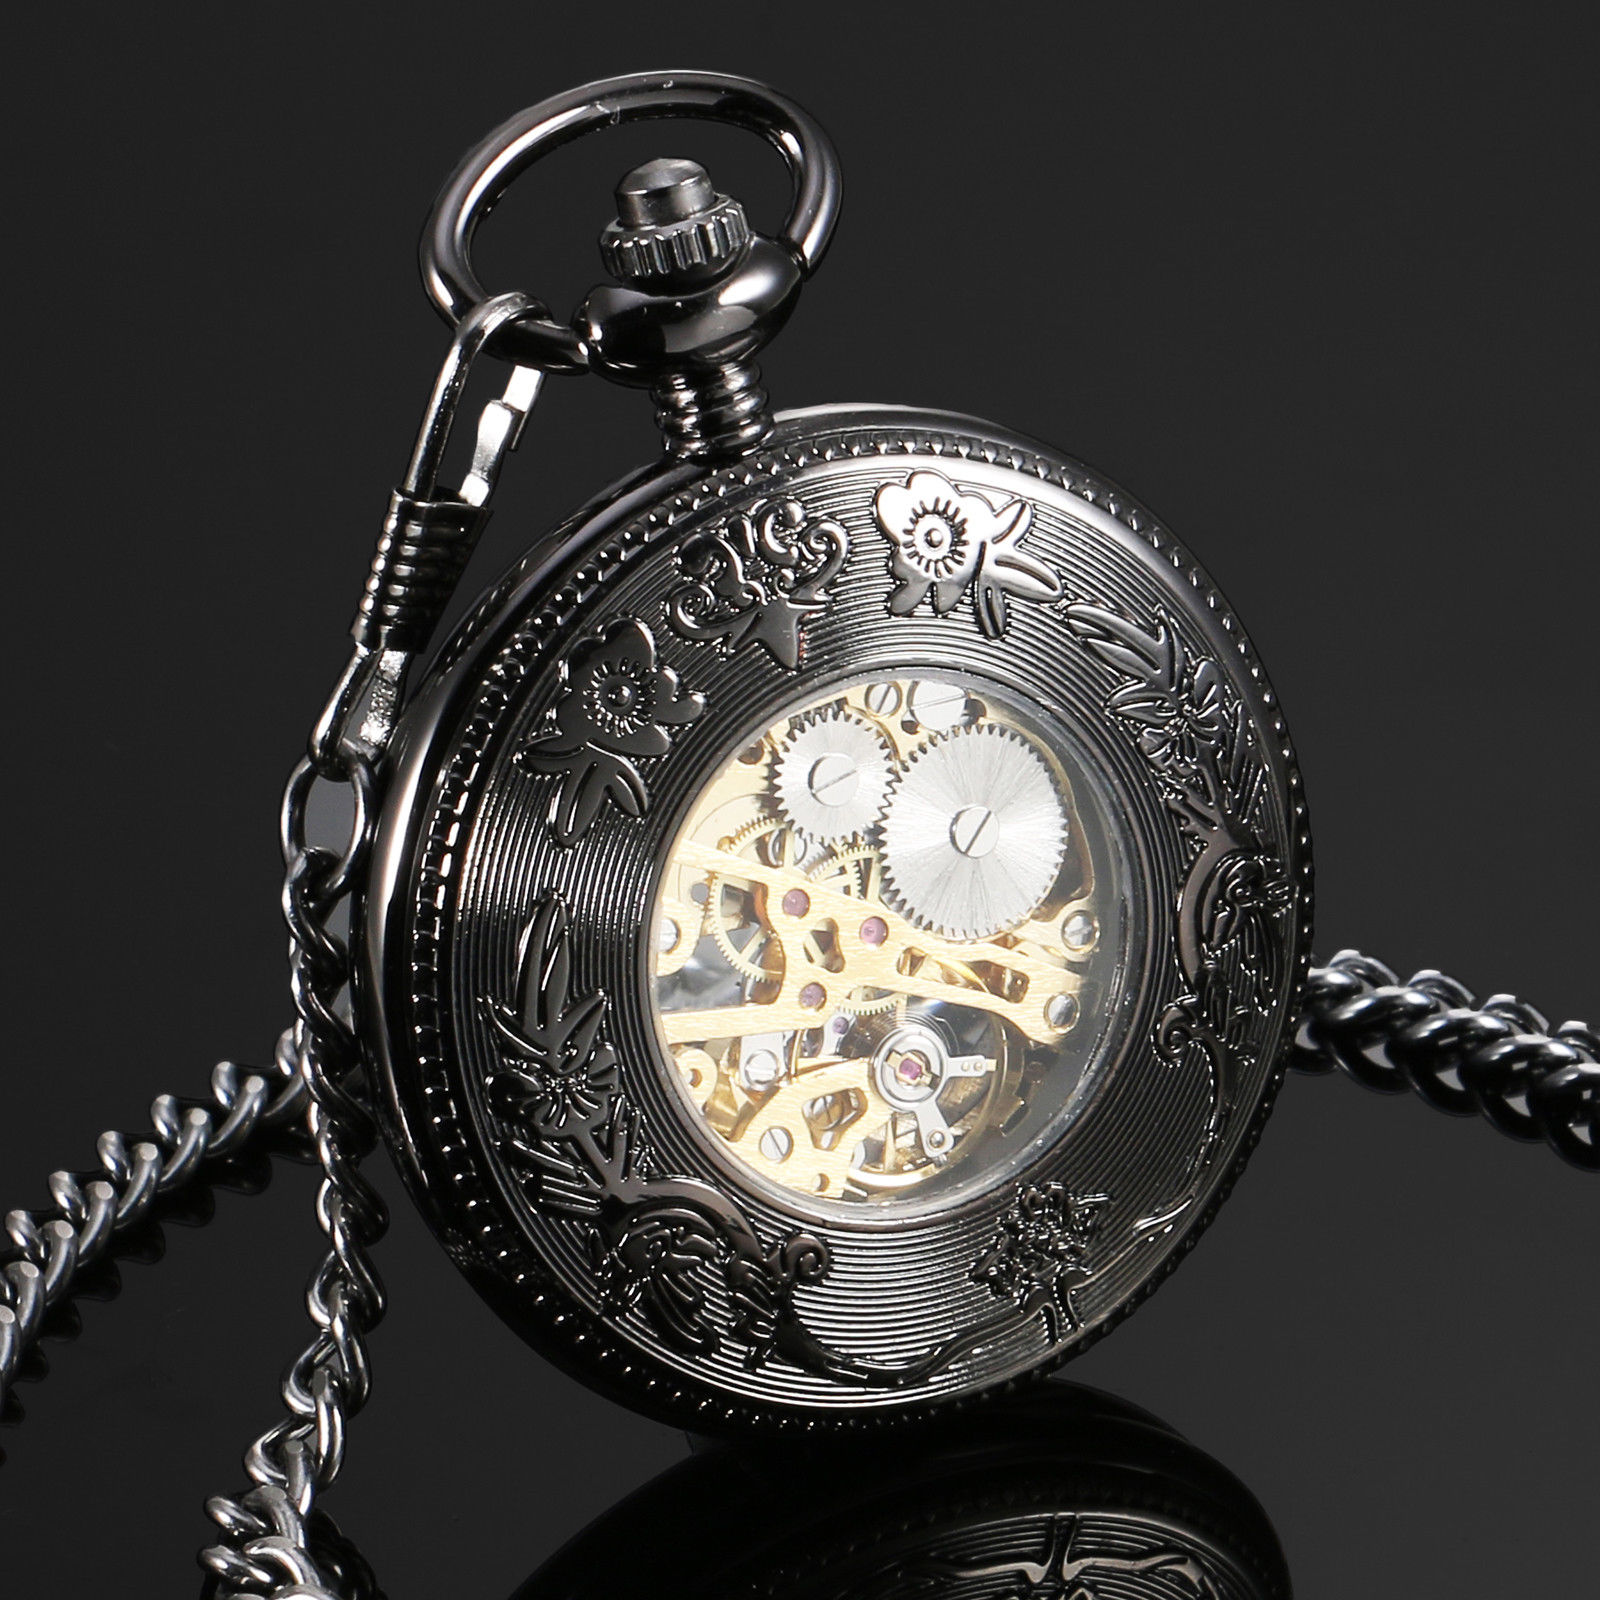 69913b0fa ... See Through Mechanical Mens Pocket Watch Black Dial Arabic Number Hand  Wind Watch w/Chain Gift. When you first wear it, please wind the watch by  turning ...